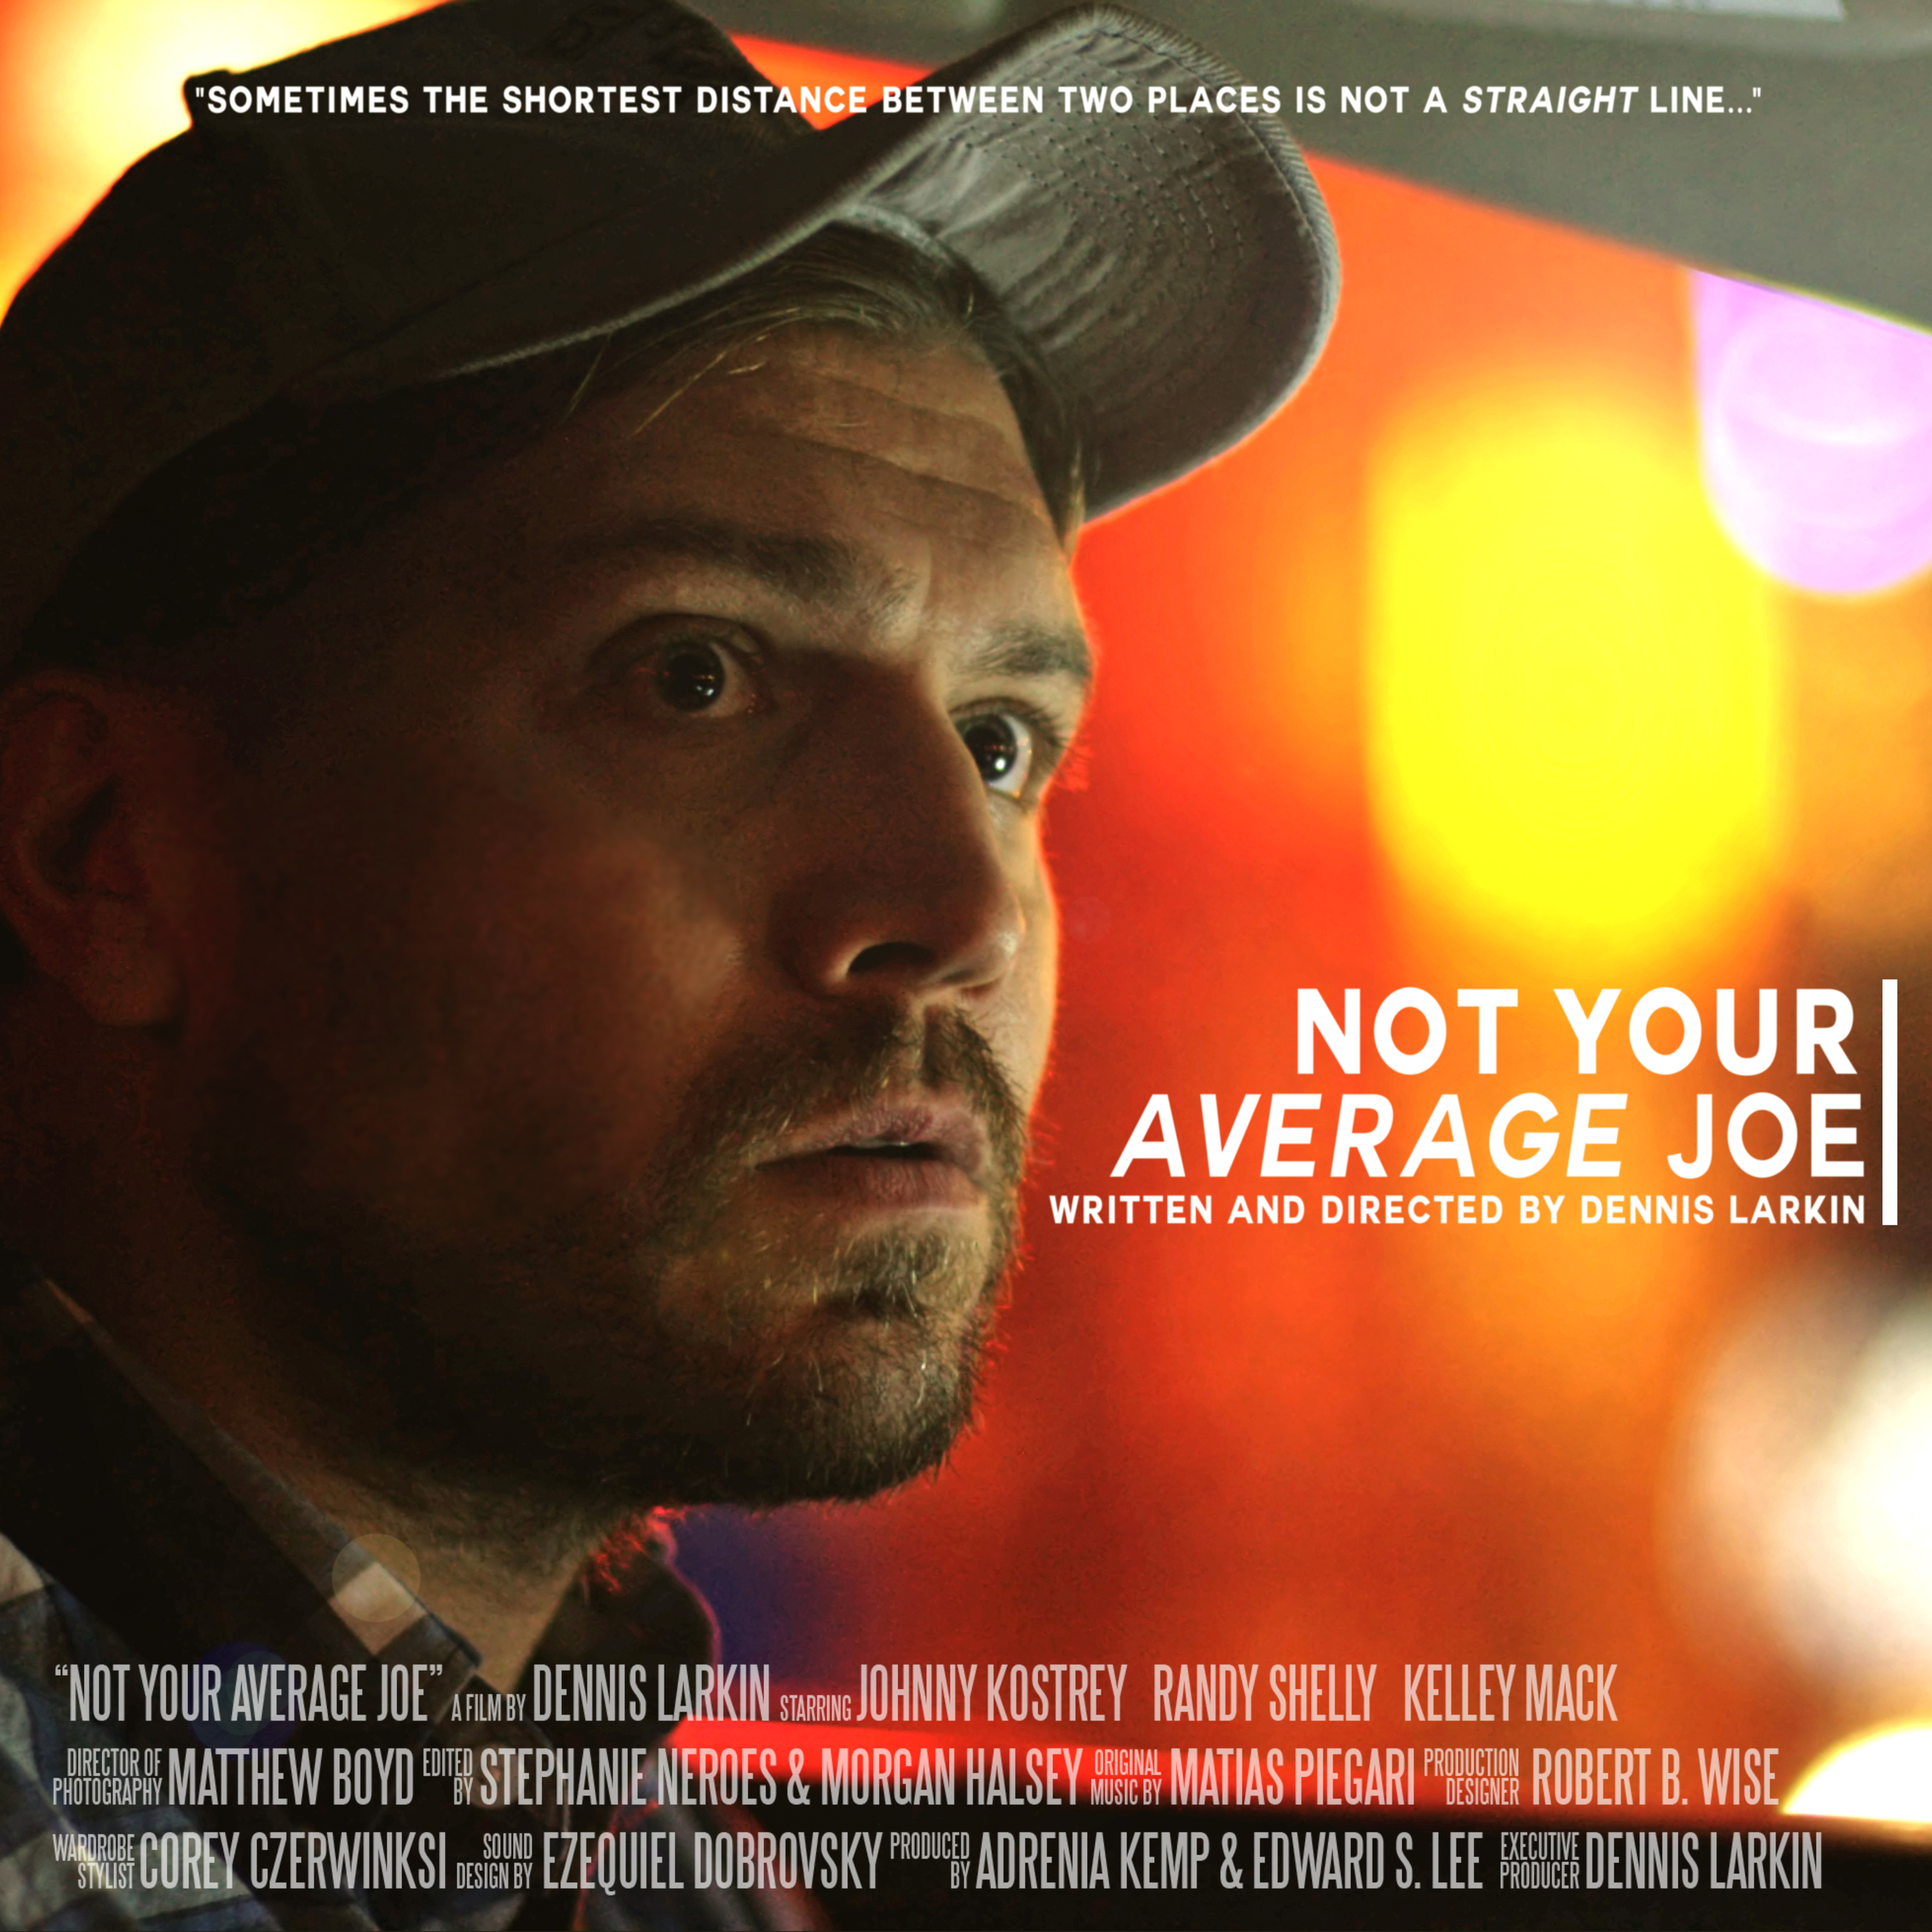 Square_17x17_Not Your Average Joe - Poster B-03_17_16a.jpg